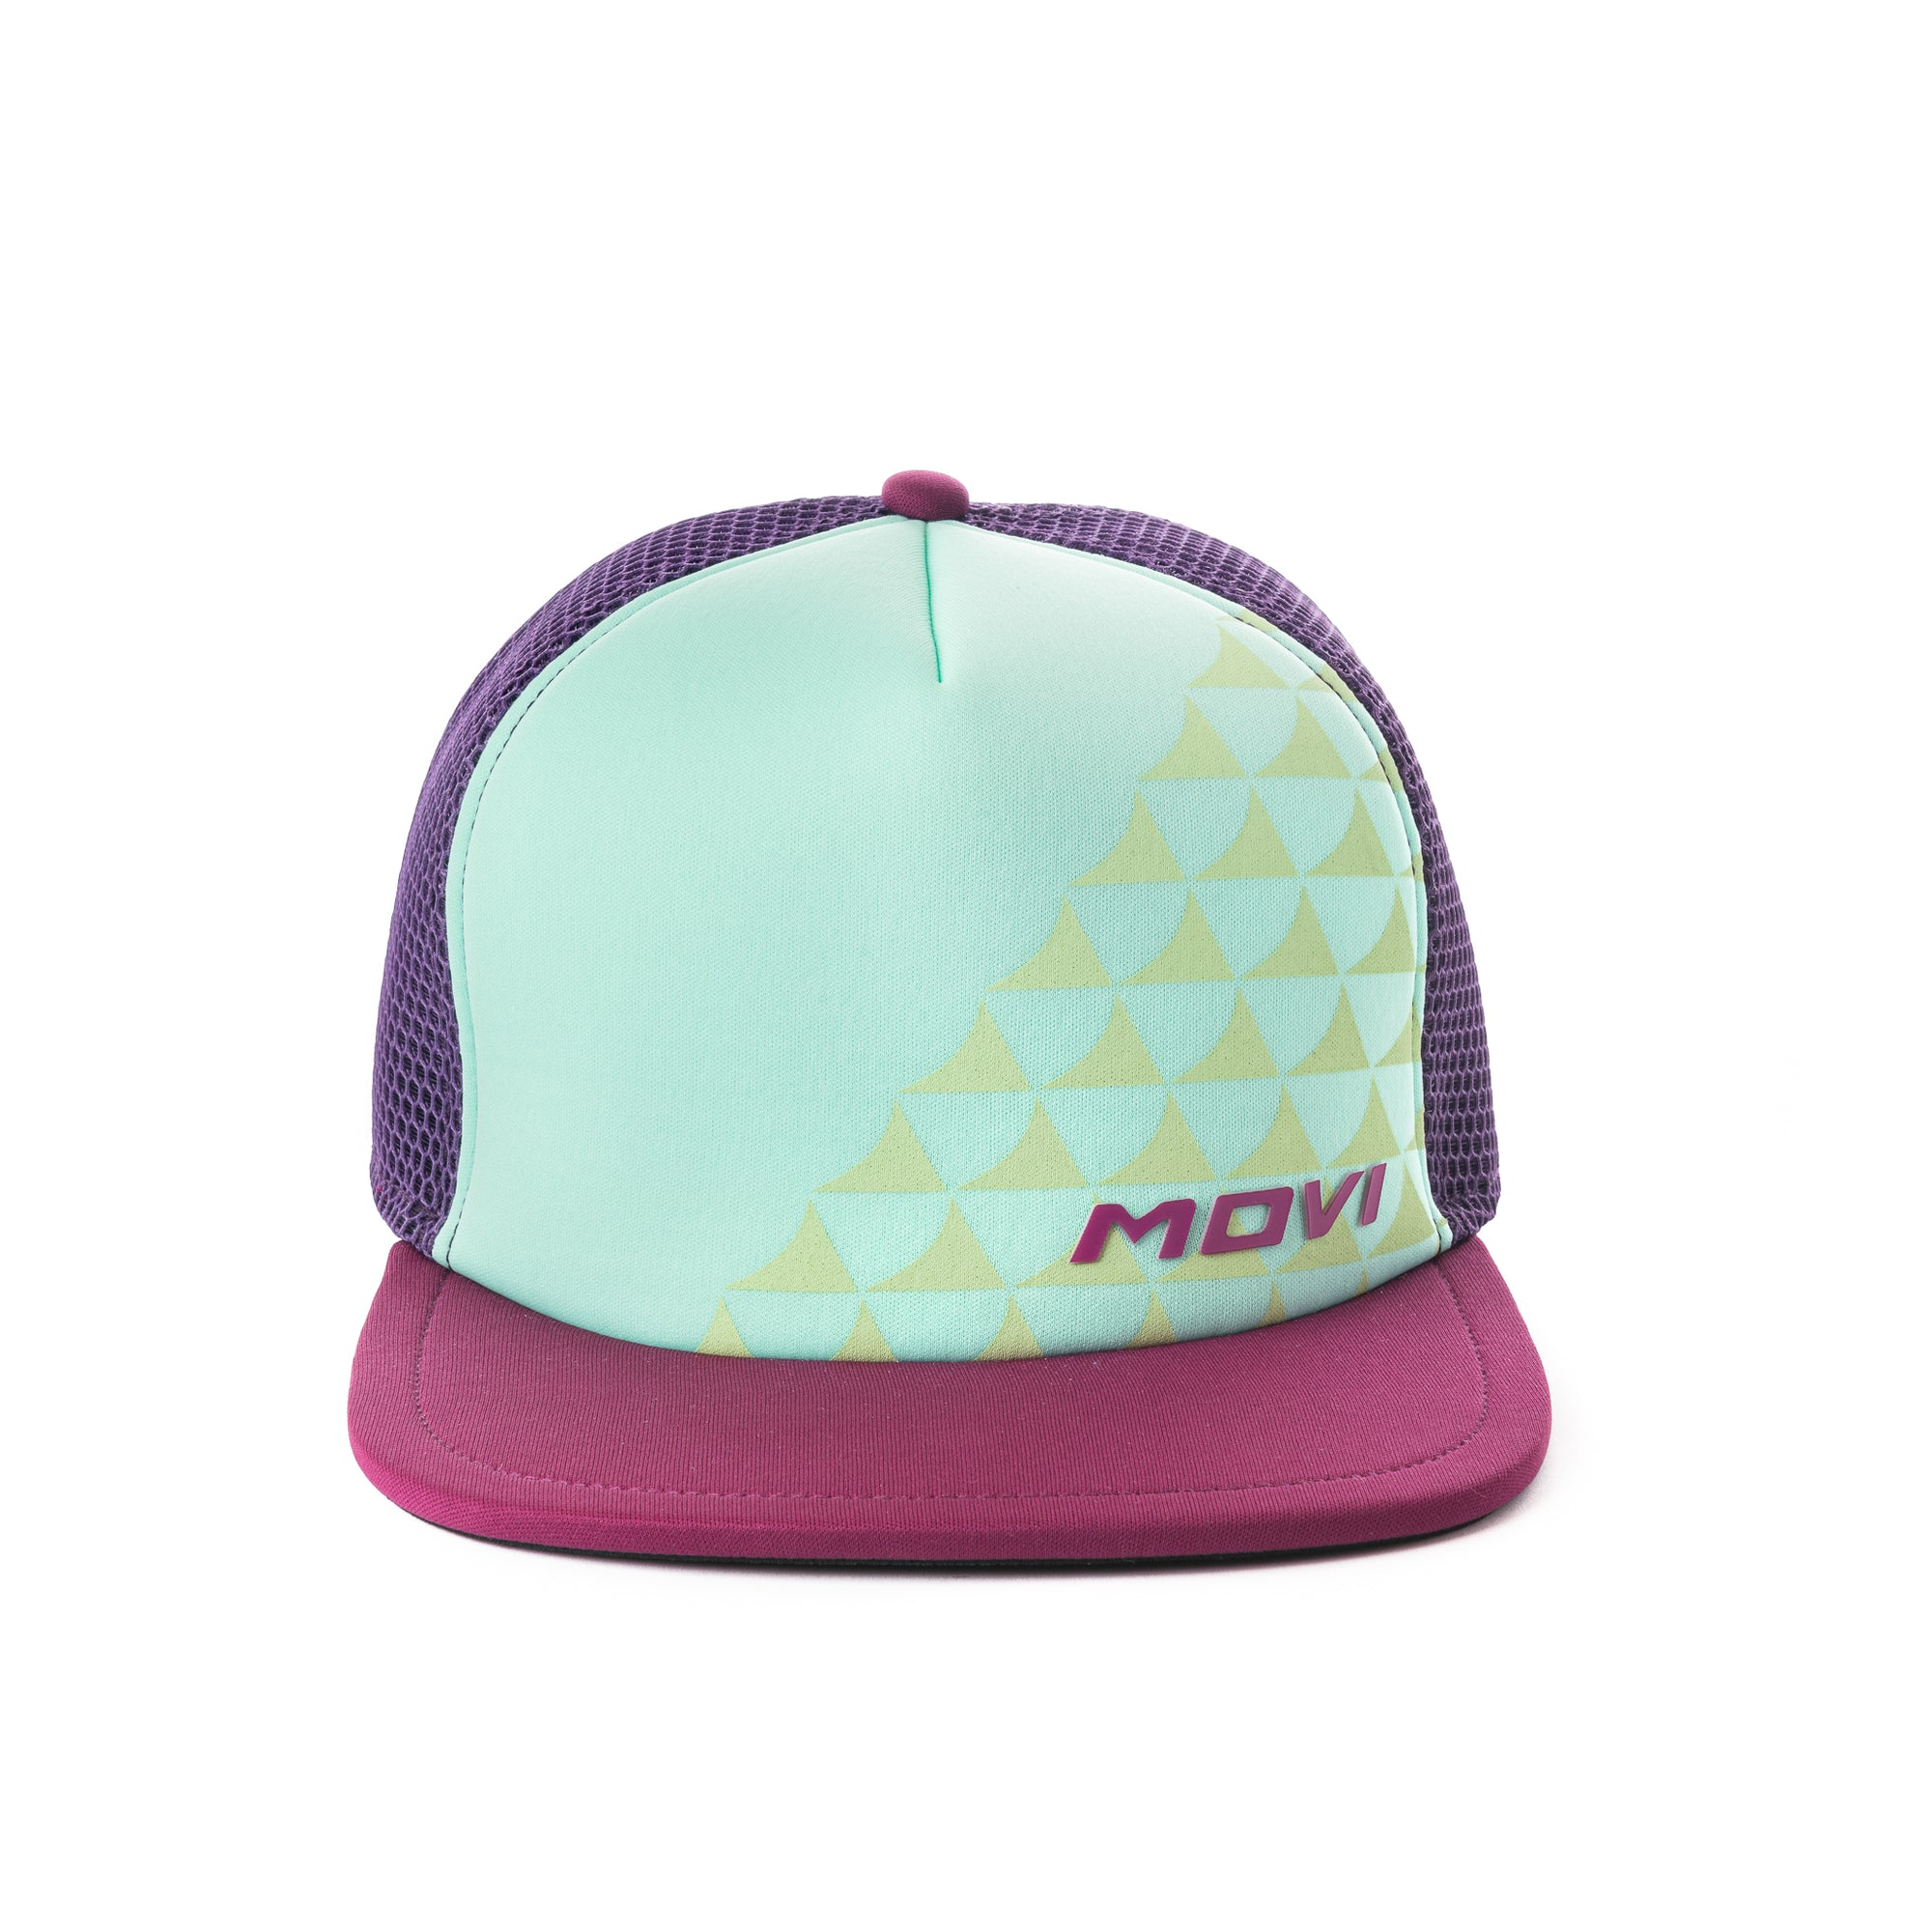 MOVI Classic Trucker - Edible Plum Diamonds